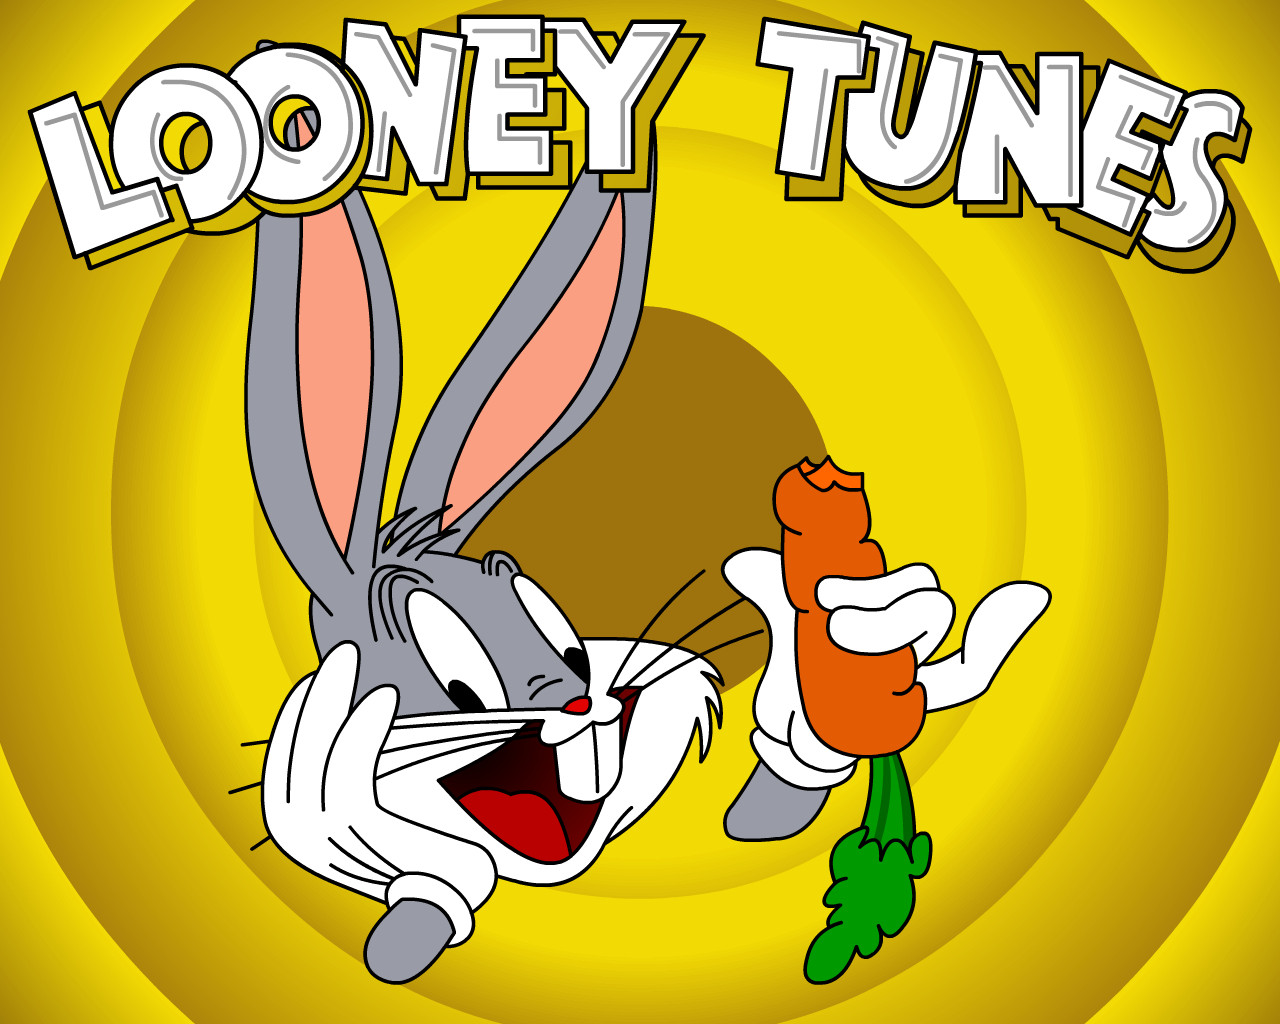 Looney Tunes - Bugs Bunny - WP by Sykonist